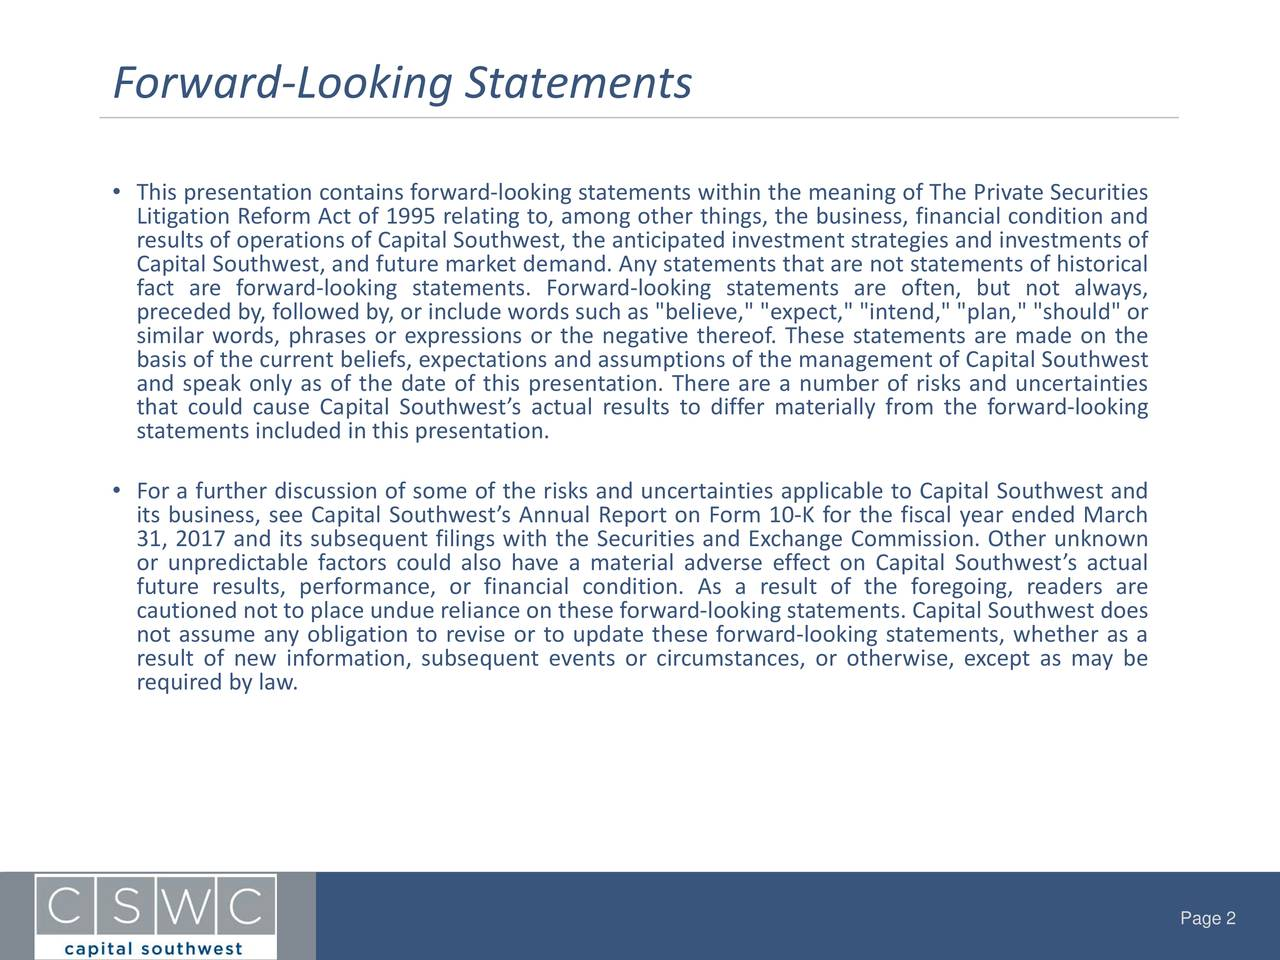 """• This presentation containsforward-looking statements within the meaning of The PrivateSecurities Litigation ReformAct of 1995 relating to, among other things, the business, financial condition and Capital Southwest, and future marketdemand. Any statements that are not statementsof historicals of fact are forward-looking statements. Forward-looking statements are often, but not always, preceded by,followedby,or include wordssuch as """"believe,"""" """"expect,"""" """"intend,"""" """"plan,"""" """"should"""" or similar words, phrases or expressions or the negative thereof. These statements are made on the basis of the current beliefs, expectations and assumptions of the management of CapitalSouthwest and speak only as of the date of this presentation. There are a number of risks and uncertainties that could cause Capital Southwest's actual results to differ materially from the forward-looking statements included in this presentation. • For a further discussion of some of the risks and uncertainties applicable to Capital Southwest and its business, see Capital Southwest's Annual Report on Form 10-K for the fiscal year ended March 31, 2017 and its subsequent filings with the Securities and Exchange Commission. Other unknown or unpredictable factors could also have a material adverse effect on Capital Southwest'sactual future results, performance, or financial condition. As a result of the foregoing, readers are cautioned not to place undue relianceon these forward-looking statements. Capital Southwest does not assume any obligation to revise or to update these forward-looking statements, whether as a result of new information, subsequent events or circumstances, or otherwise, except as may be requiredby law. Page 2"""